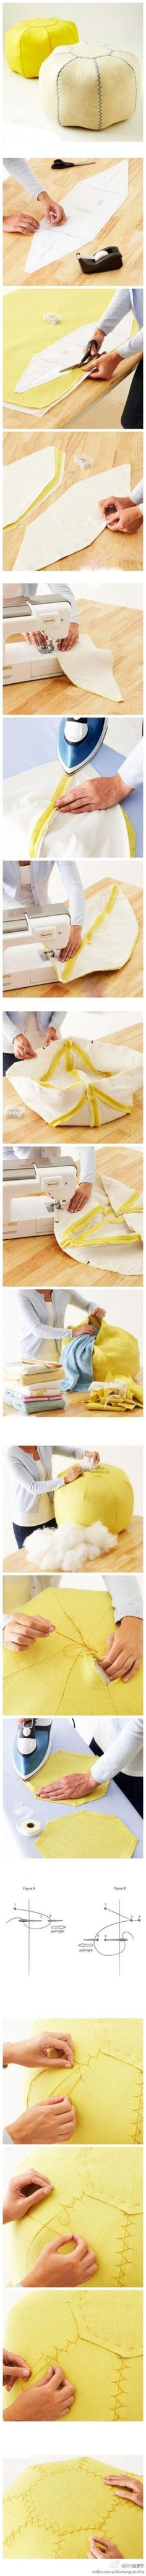 Search recycled images